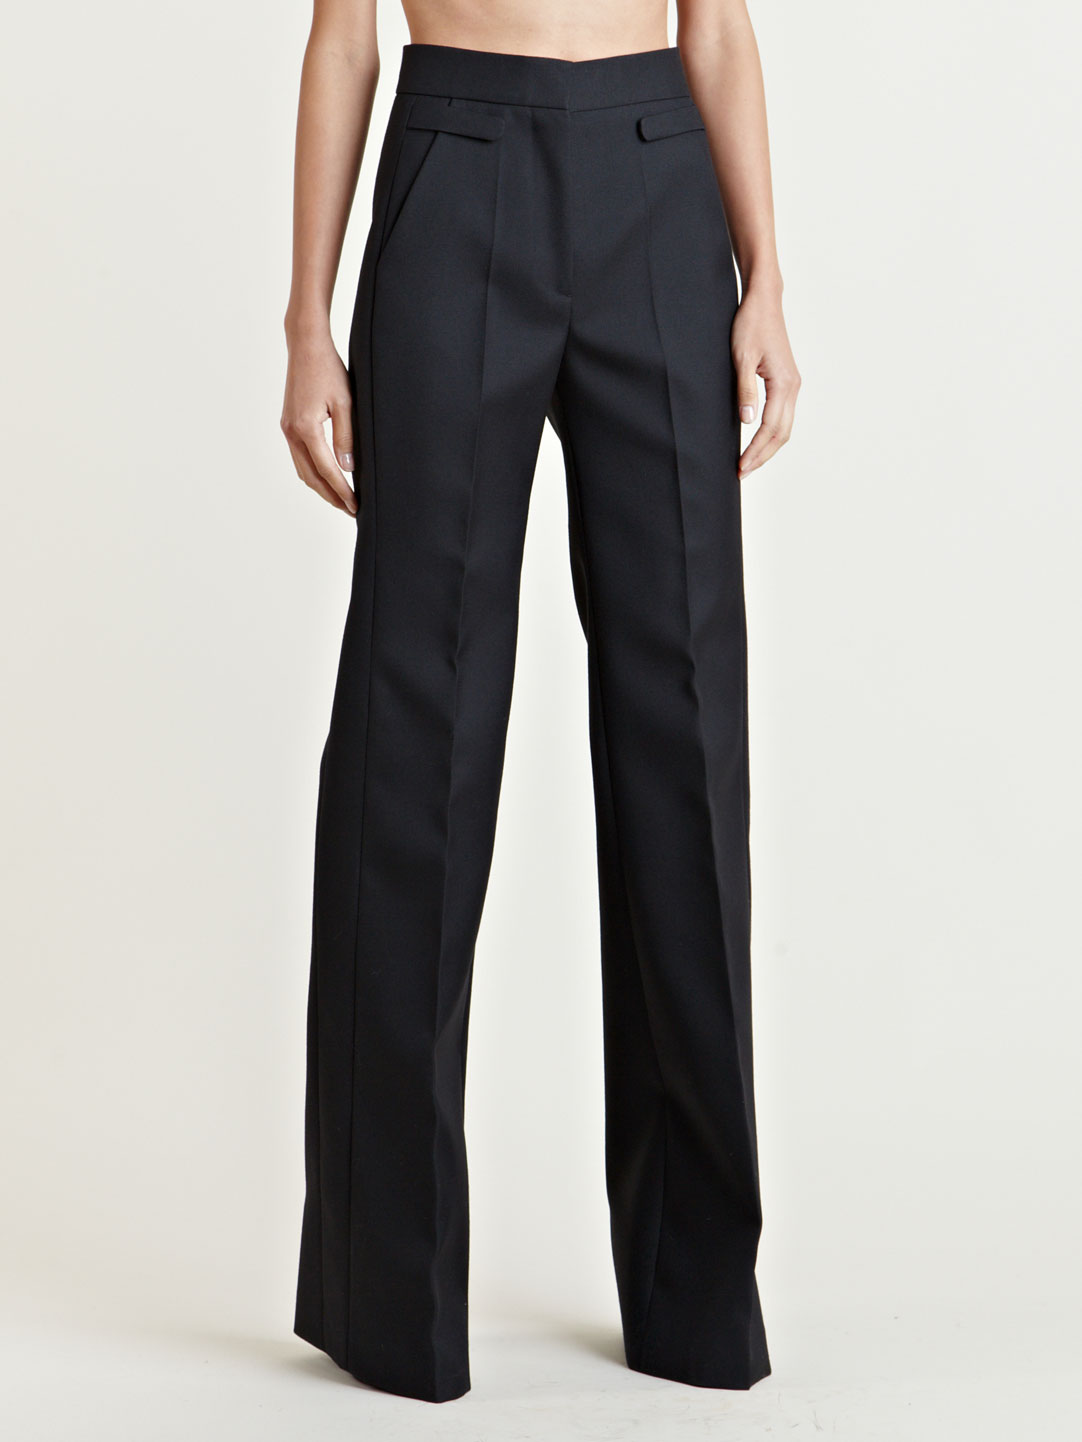 Givenchy Womens High Waisted Wide Leg Pants in Black - Lyst